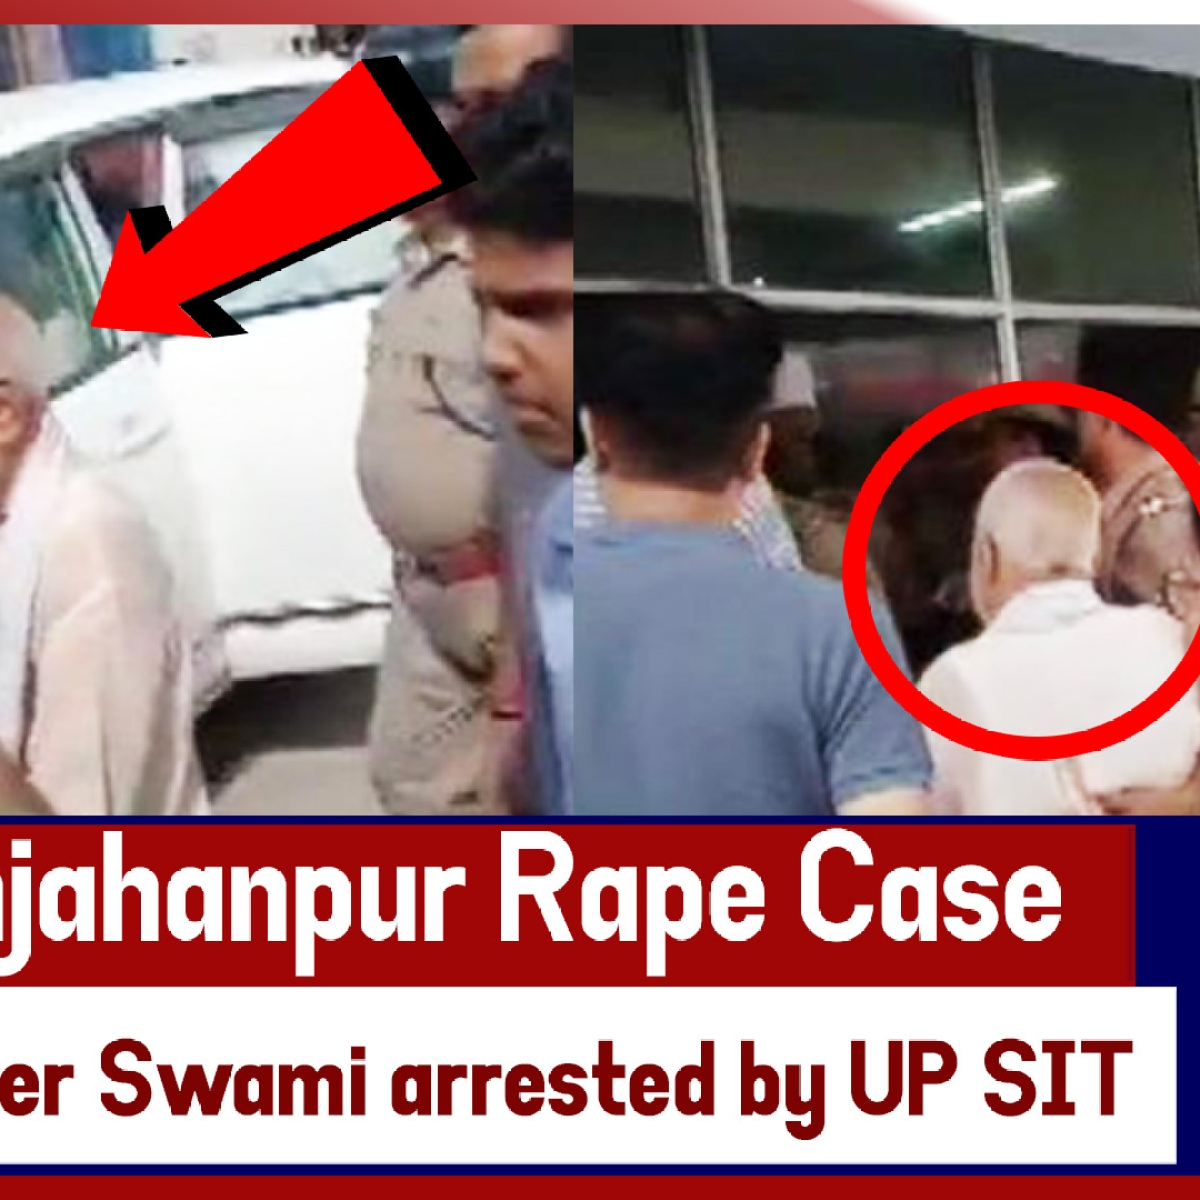 Shahjahanpur Rape Case: BJP Leader Swami Chinmayanand Arrested By UP SIT